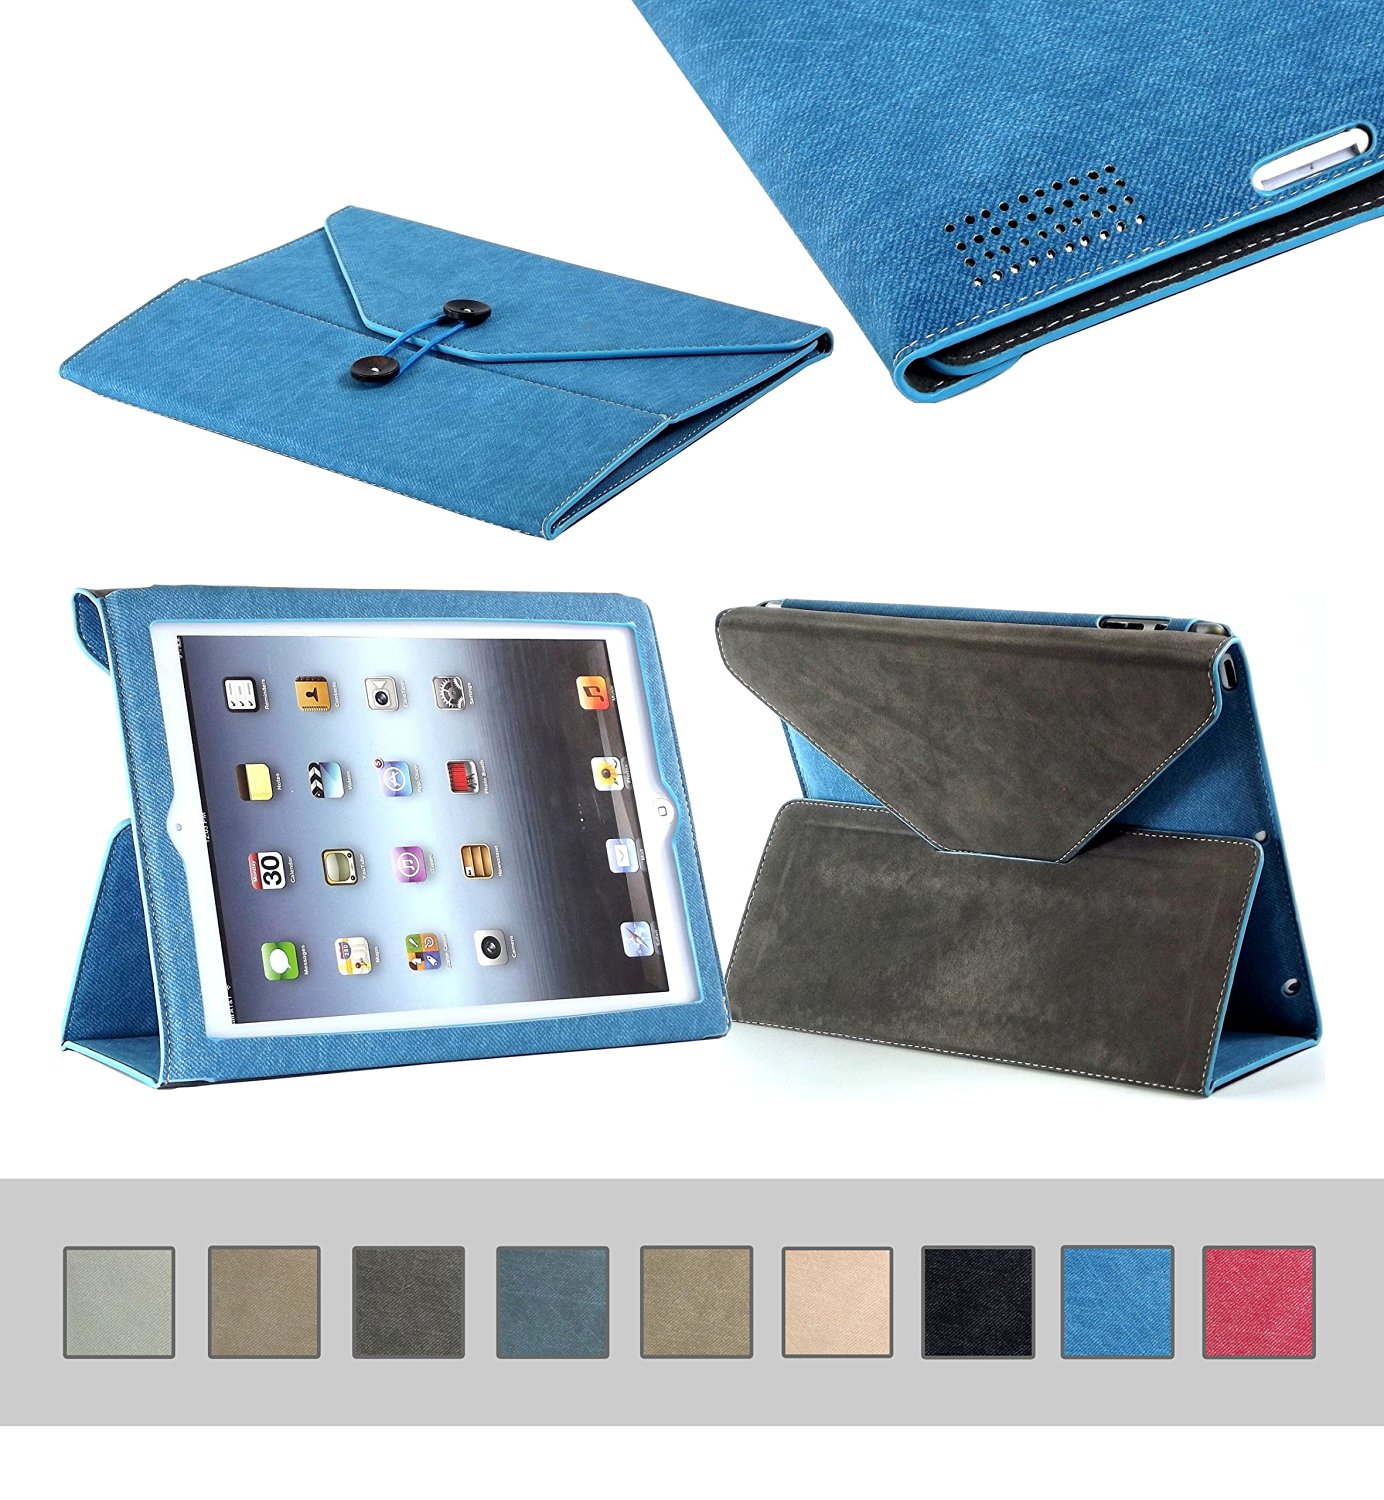 BTM Denim Envelope Jean Portfolio Case Cover Protector for Apple Ipad 2nd 2, 3, 4th 4 Generation Retina Display w/ Elastic Strap & Great Holder | Cute for the Girly Girl | Protective Durable Designer Stand | Cheap Price, Great Value - Blue